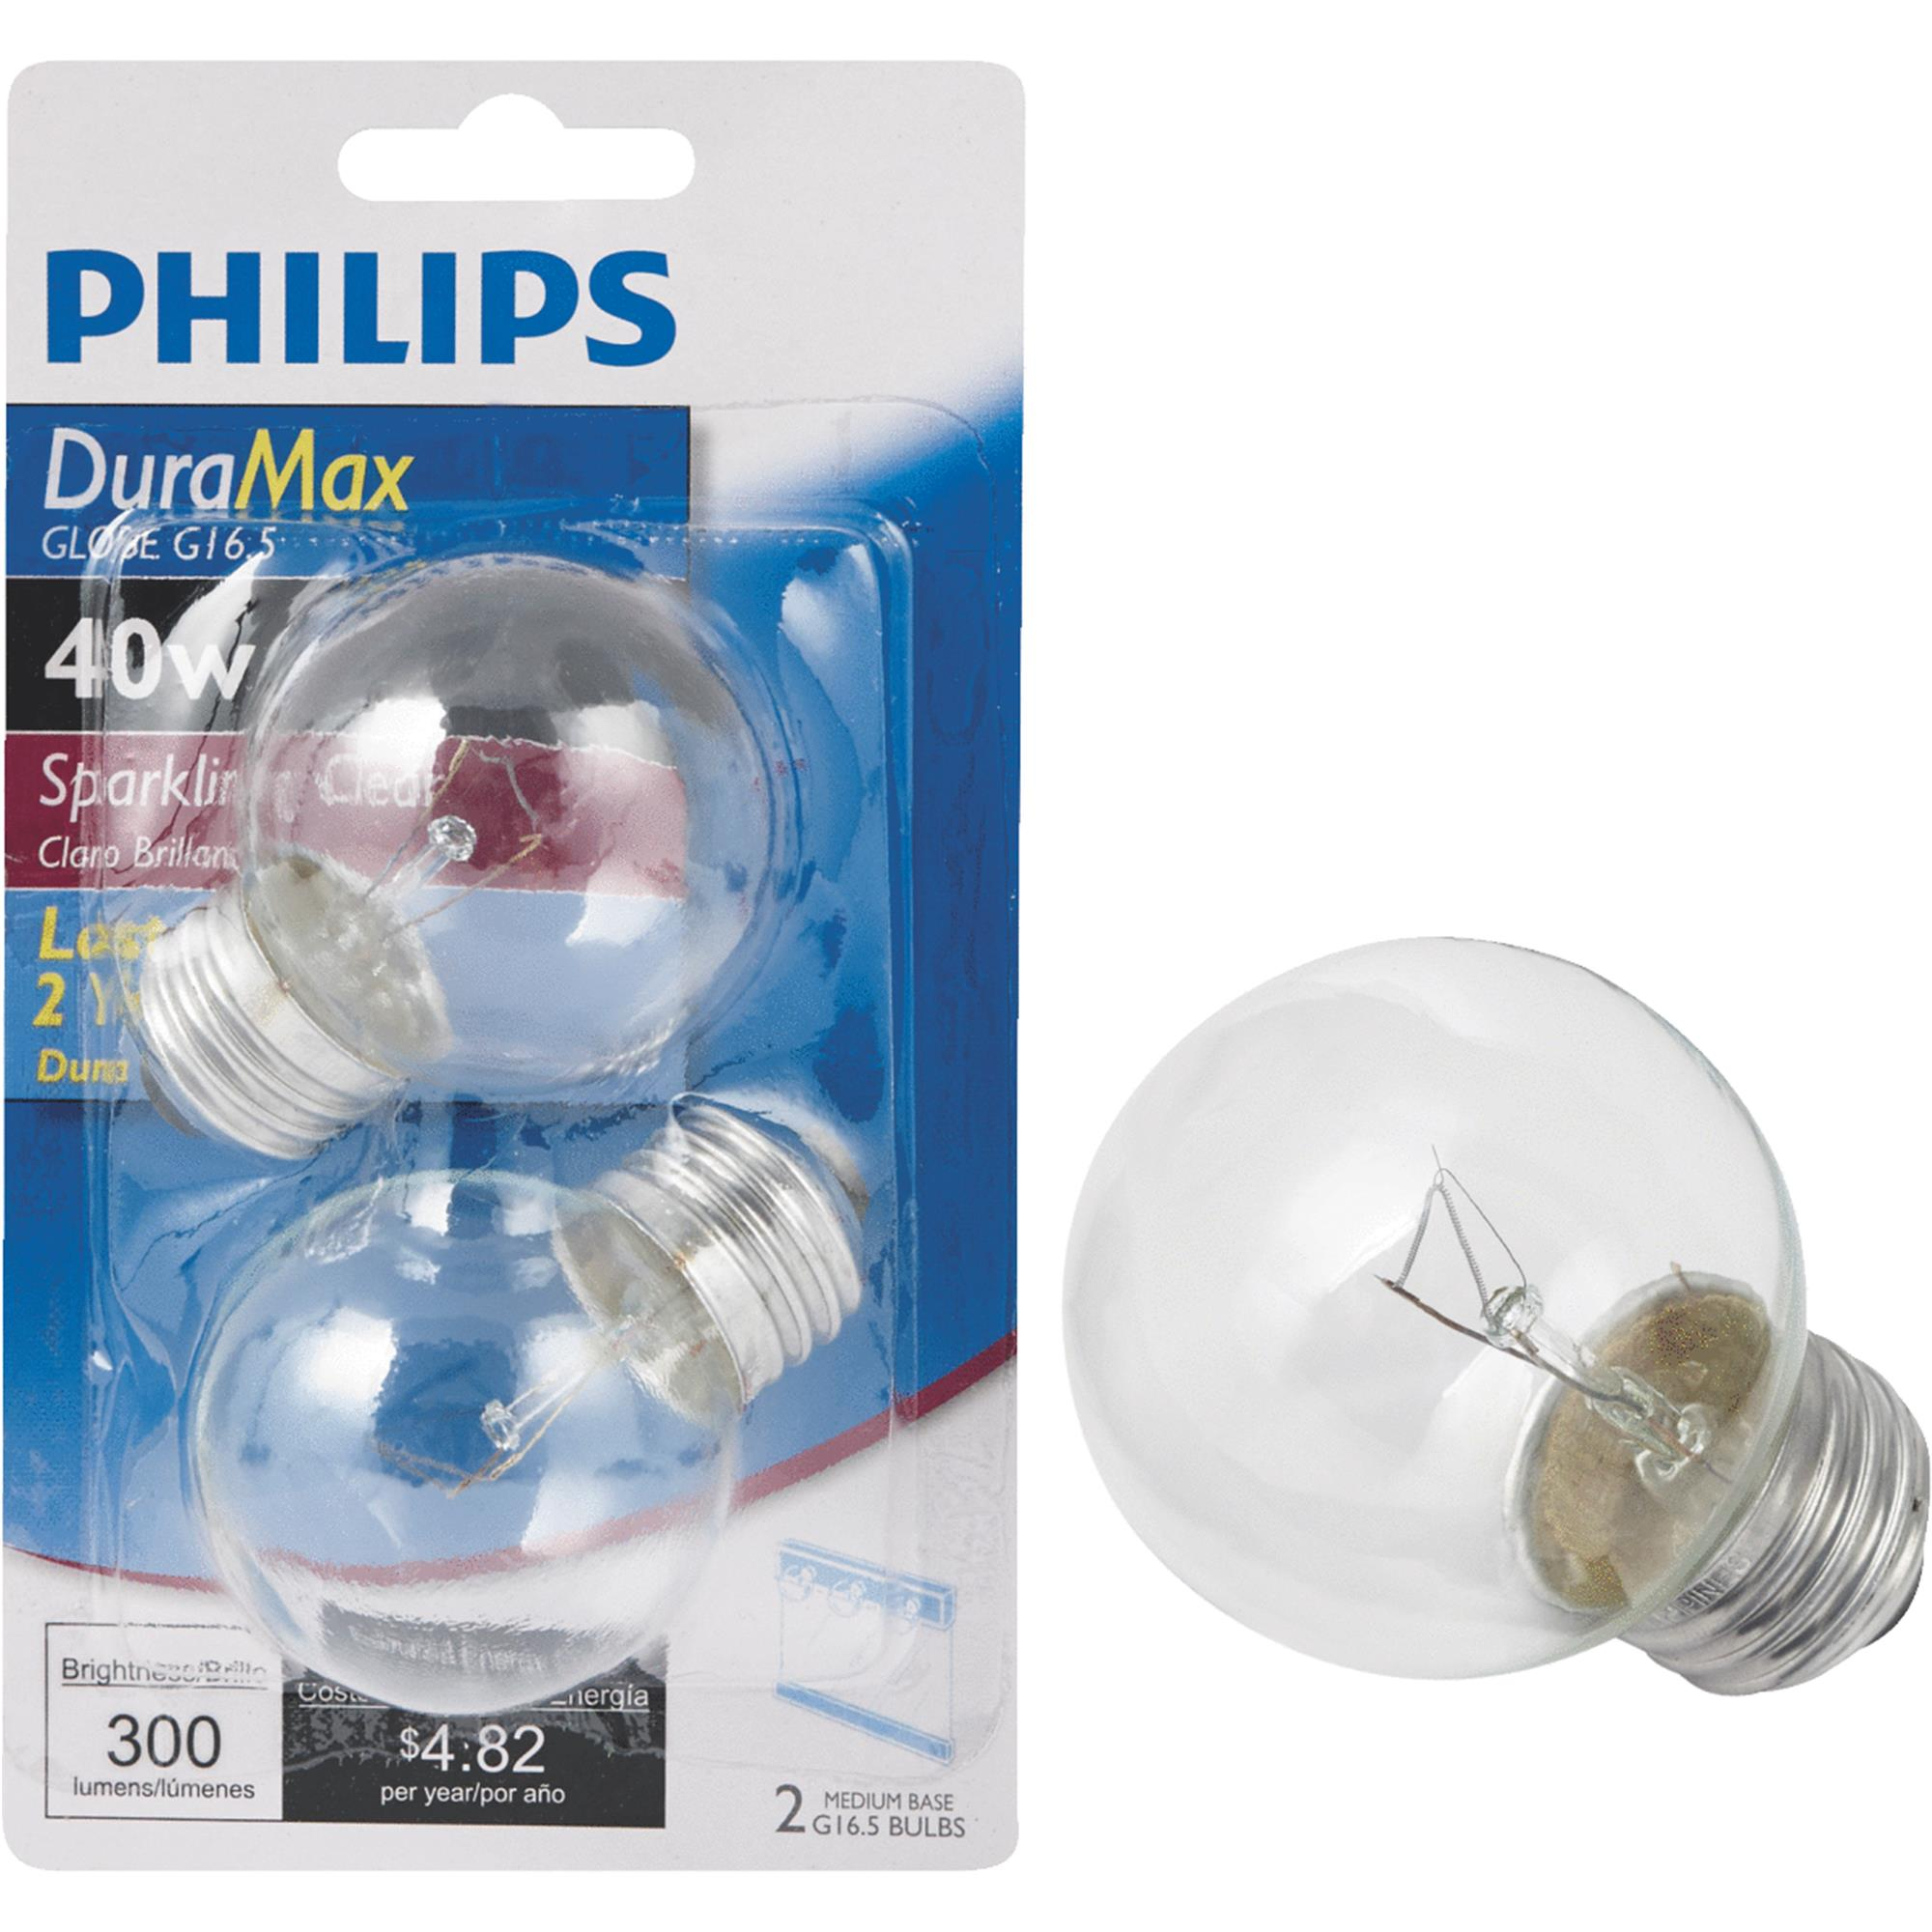 Philips DuraMax Medium G16.5 Incandescent Globe Light